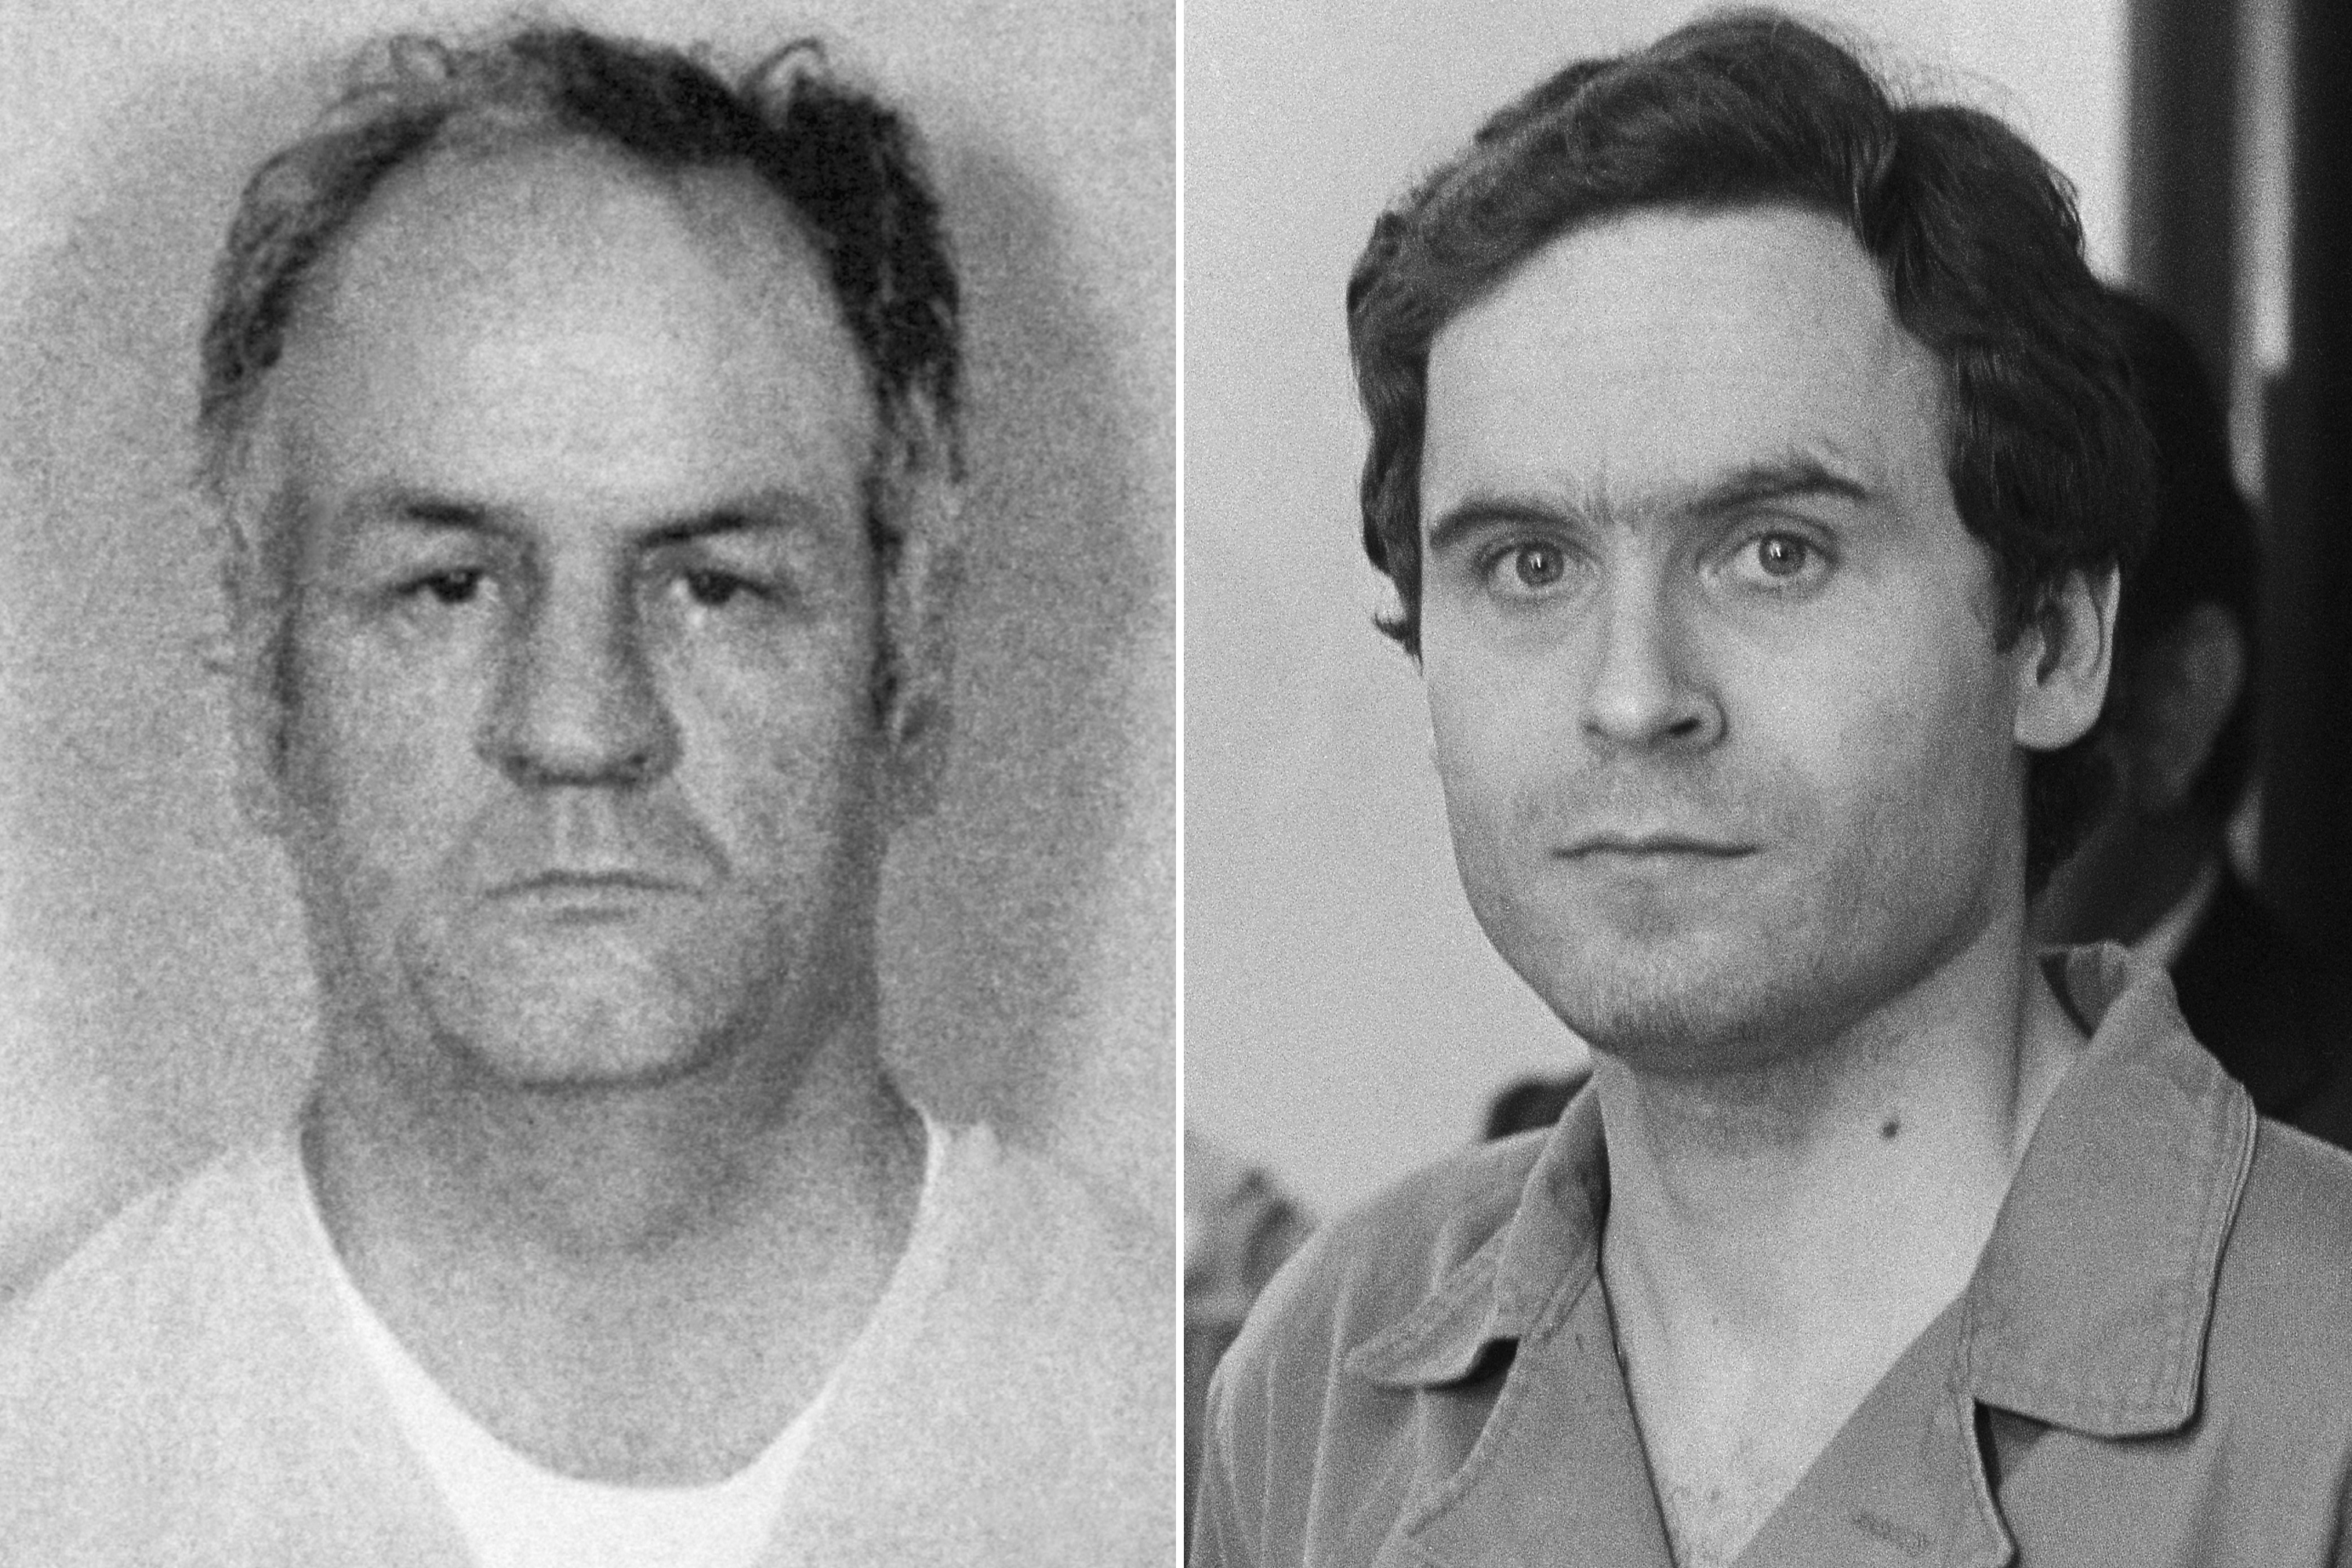 'Crazy, Not Insane' doc targets origins of serial killers